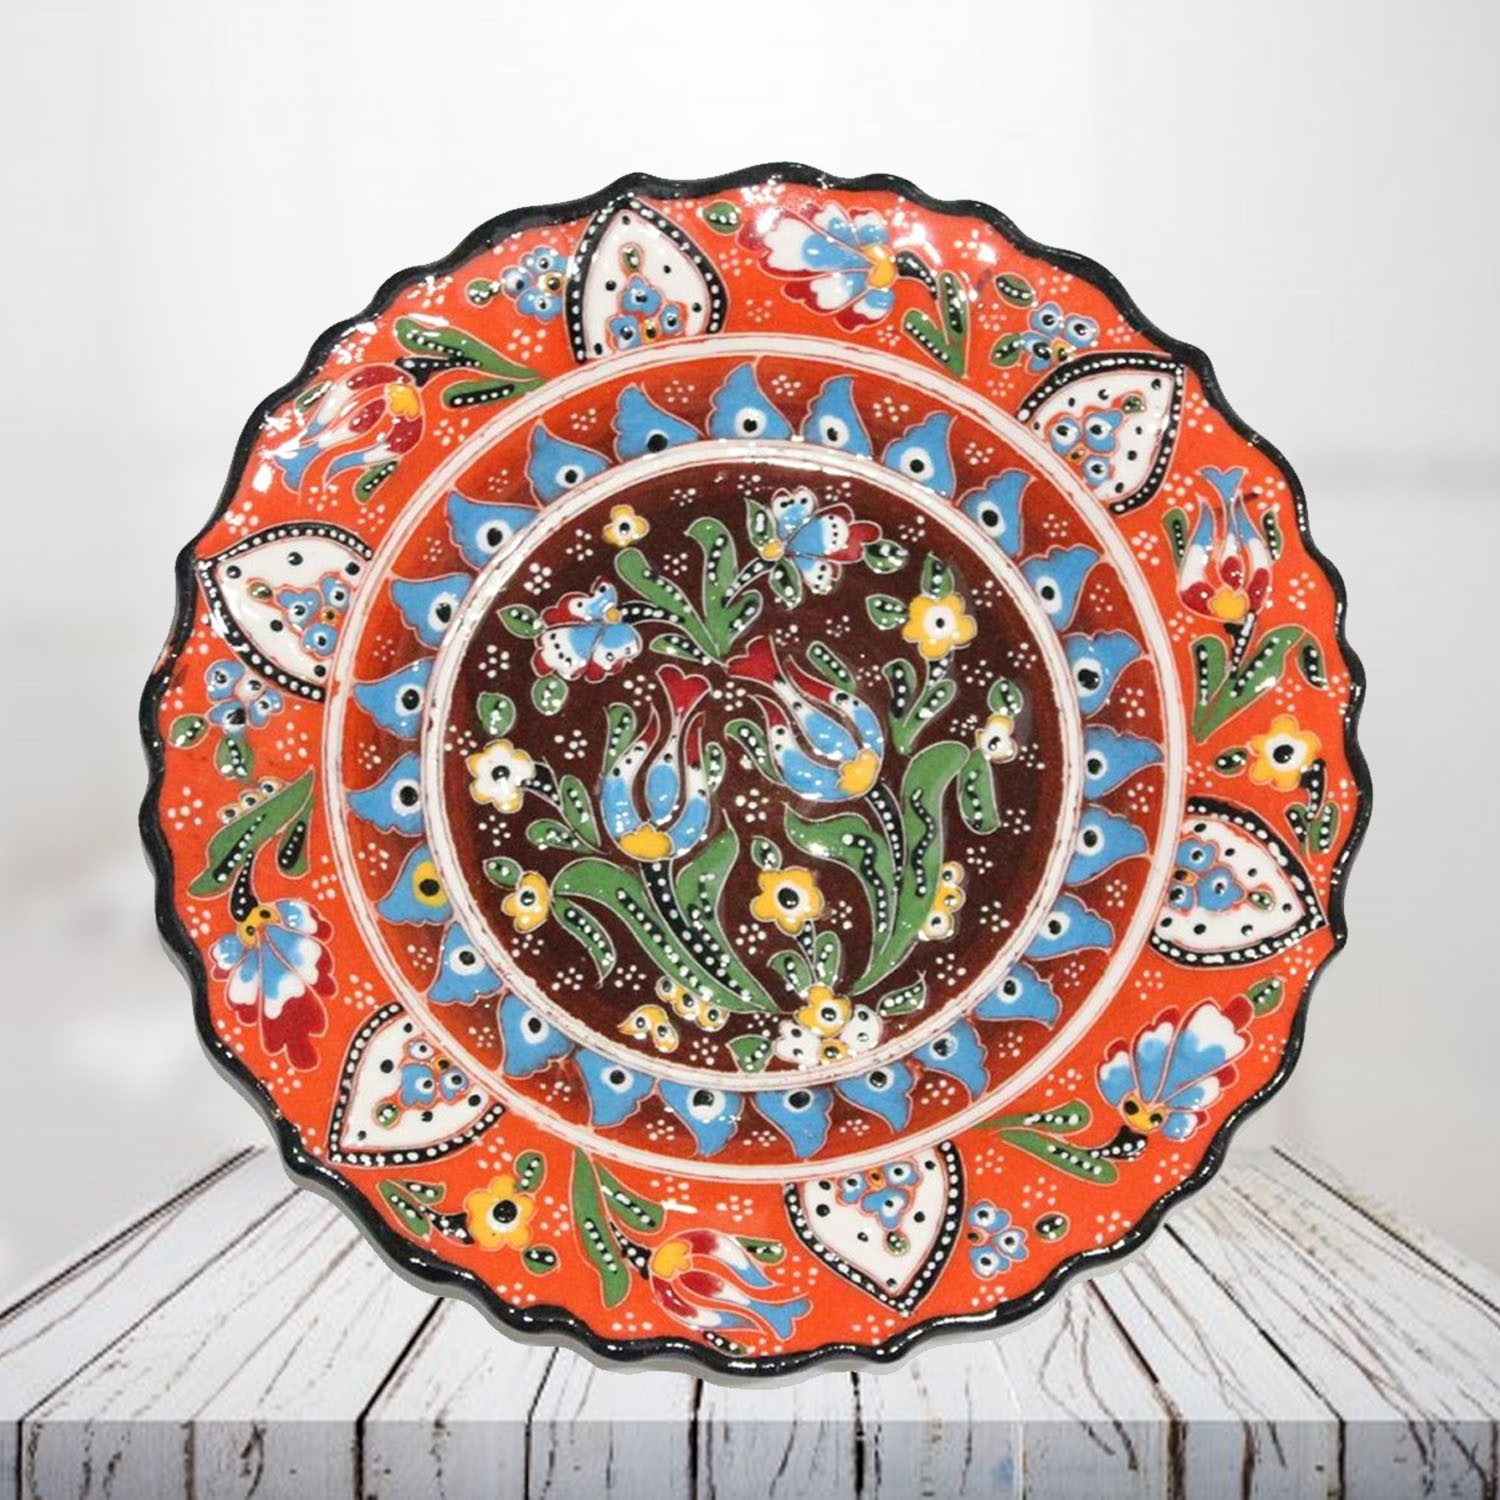 Handpainted 25 cm orange ceramic plate - SHI_CP2505